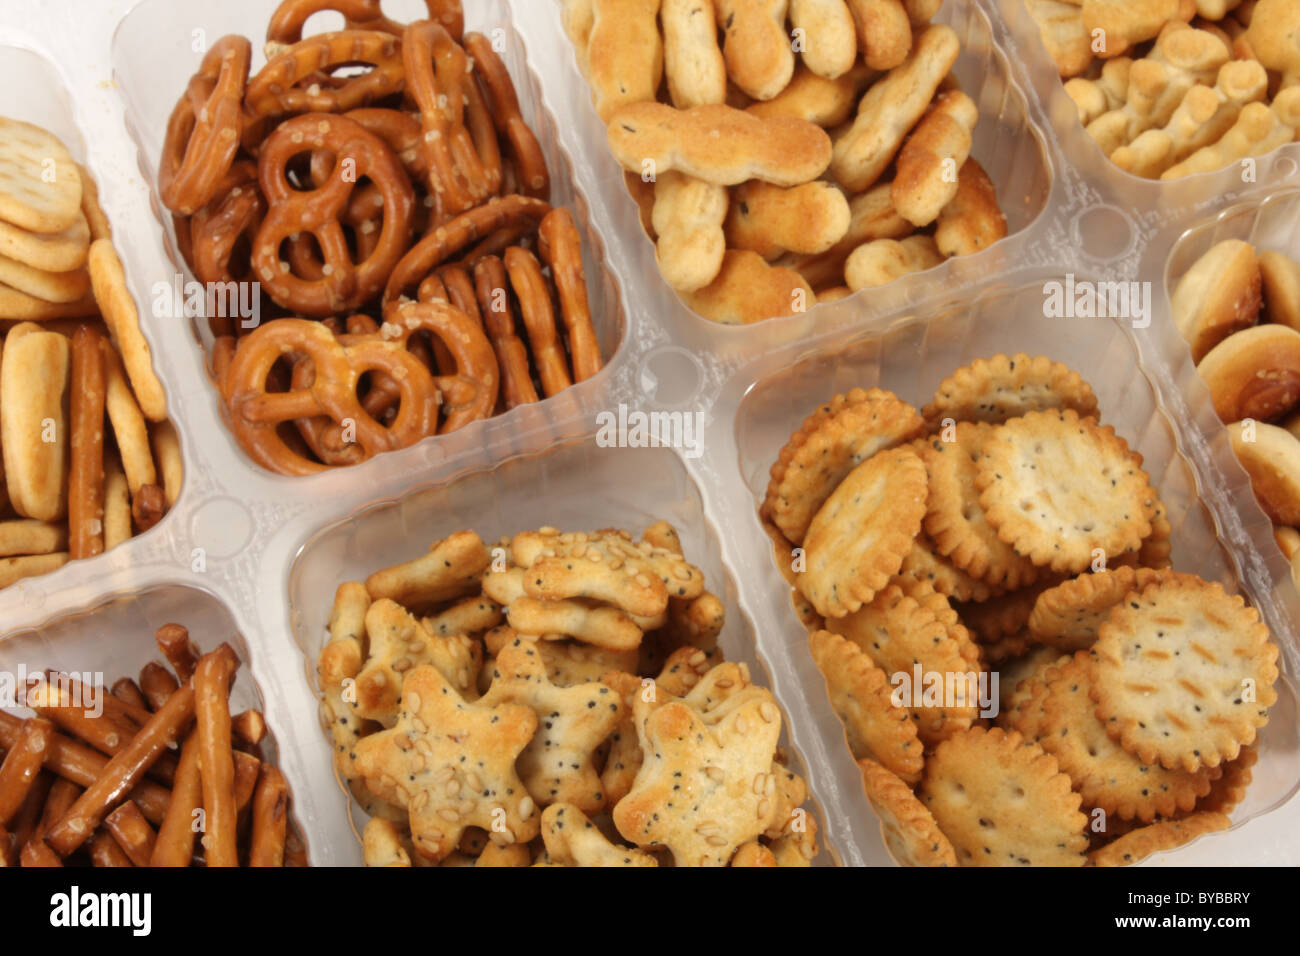 savoury snacks and pretzels food perfect for parties as party food stock photo royalty free. Black Bedroom Furniture Sets. Home Design Ideas